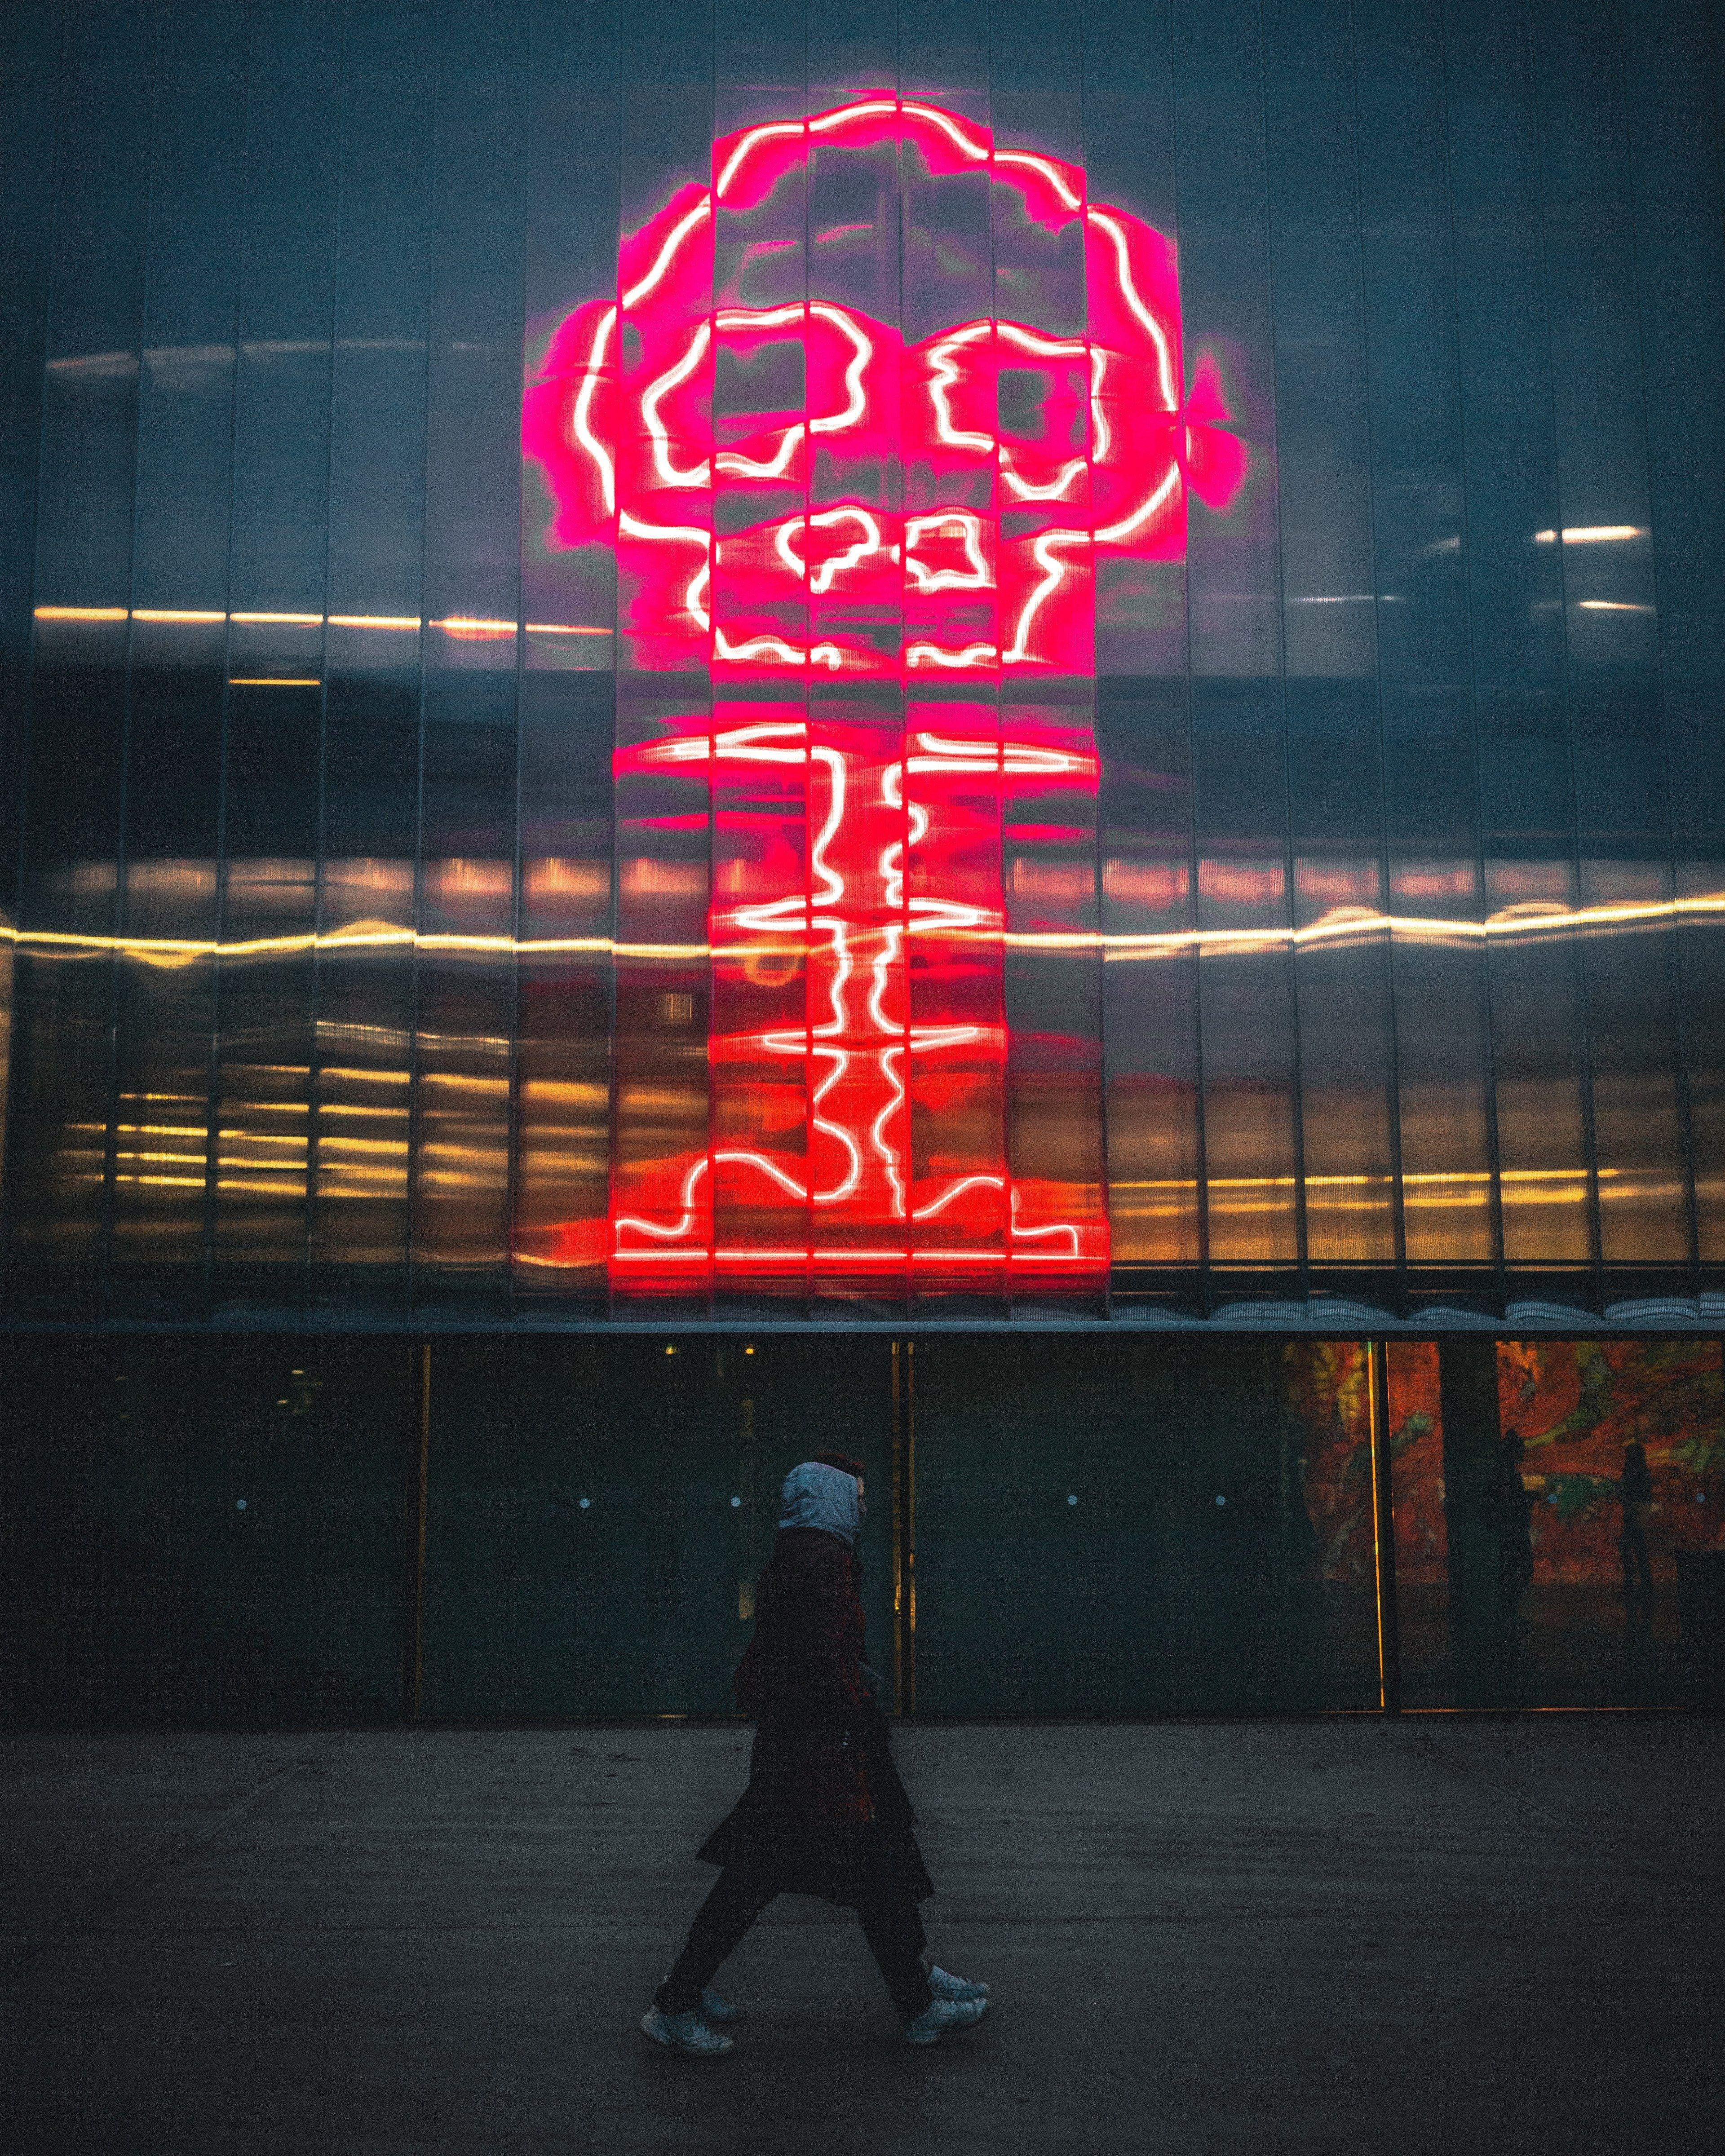 Neon Sign Wallpapers - Wallpaper Cave